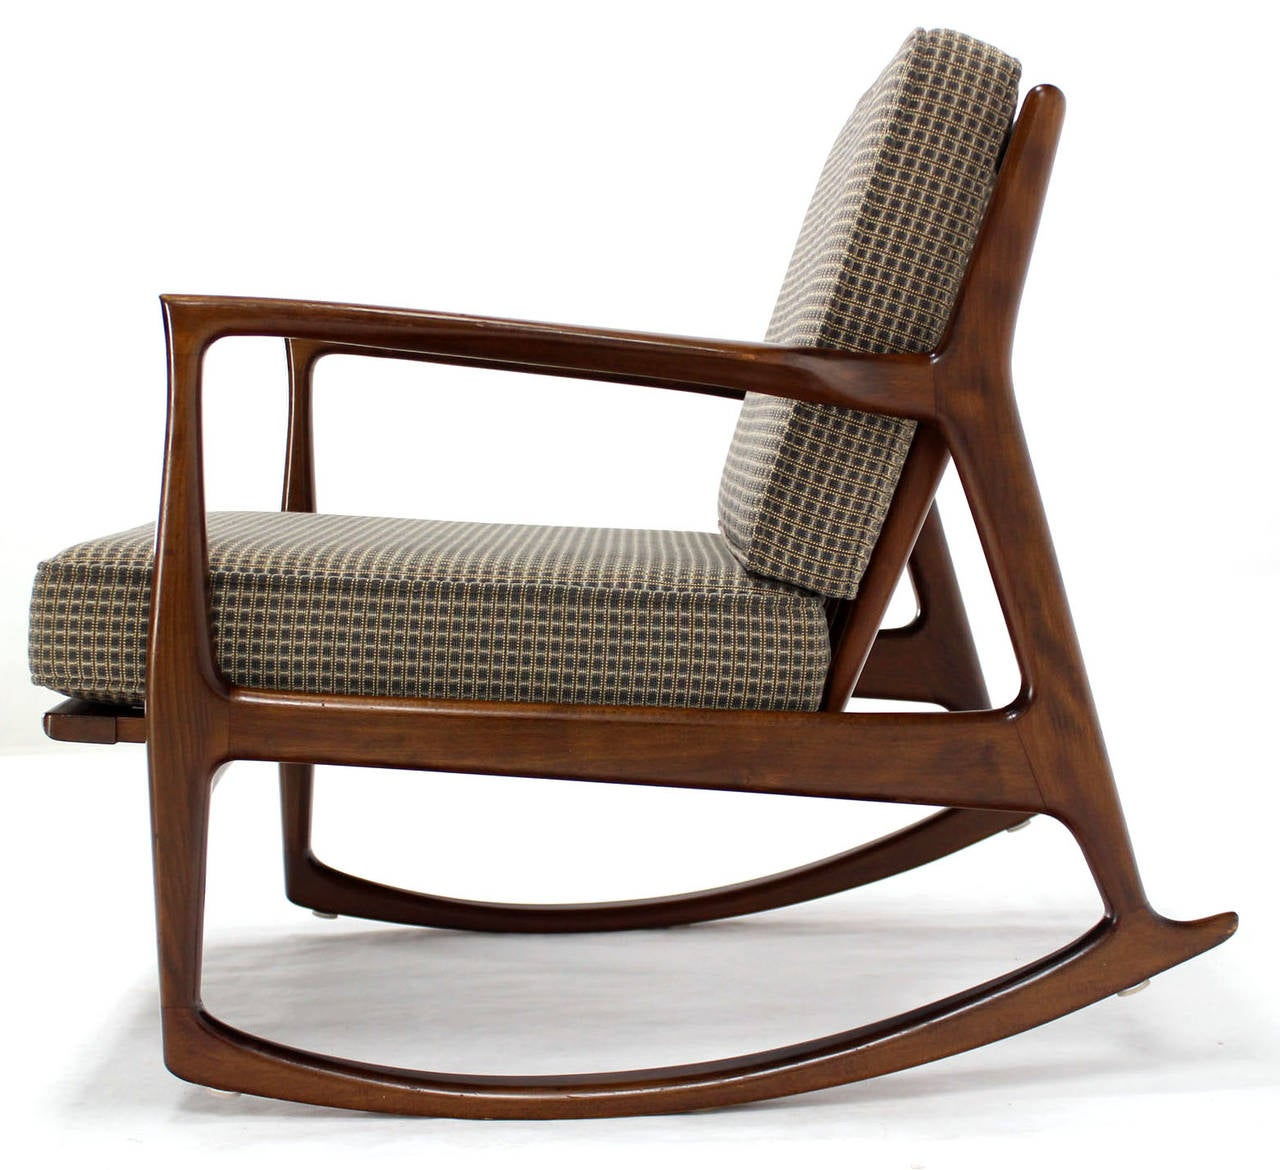 Gentil Very Nice Original Condition Danish Modern Rocking Chair By Selig